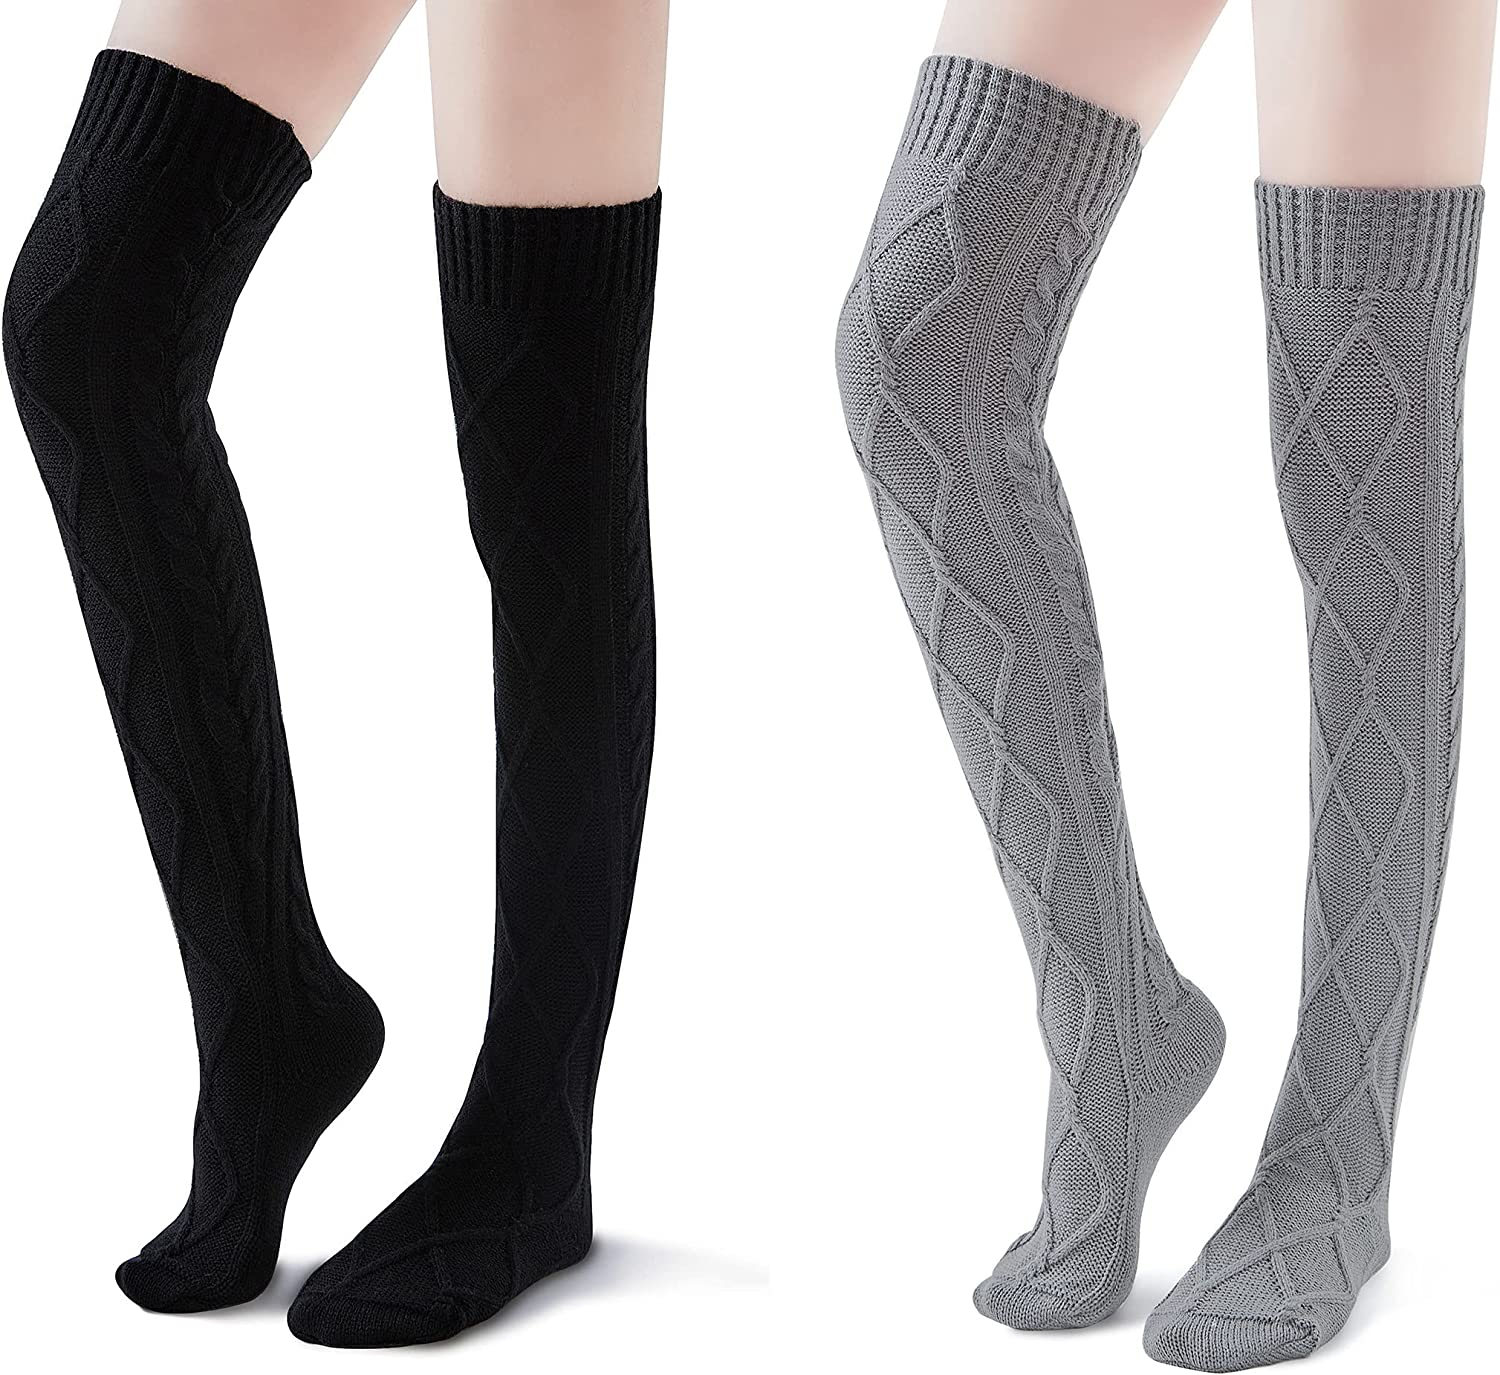 Thigh High Socks for Women Cable Knit Over the Knee Boot Socks, Long Warm Leg Warmers Winter(Gray&Black)